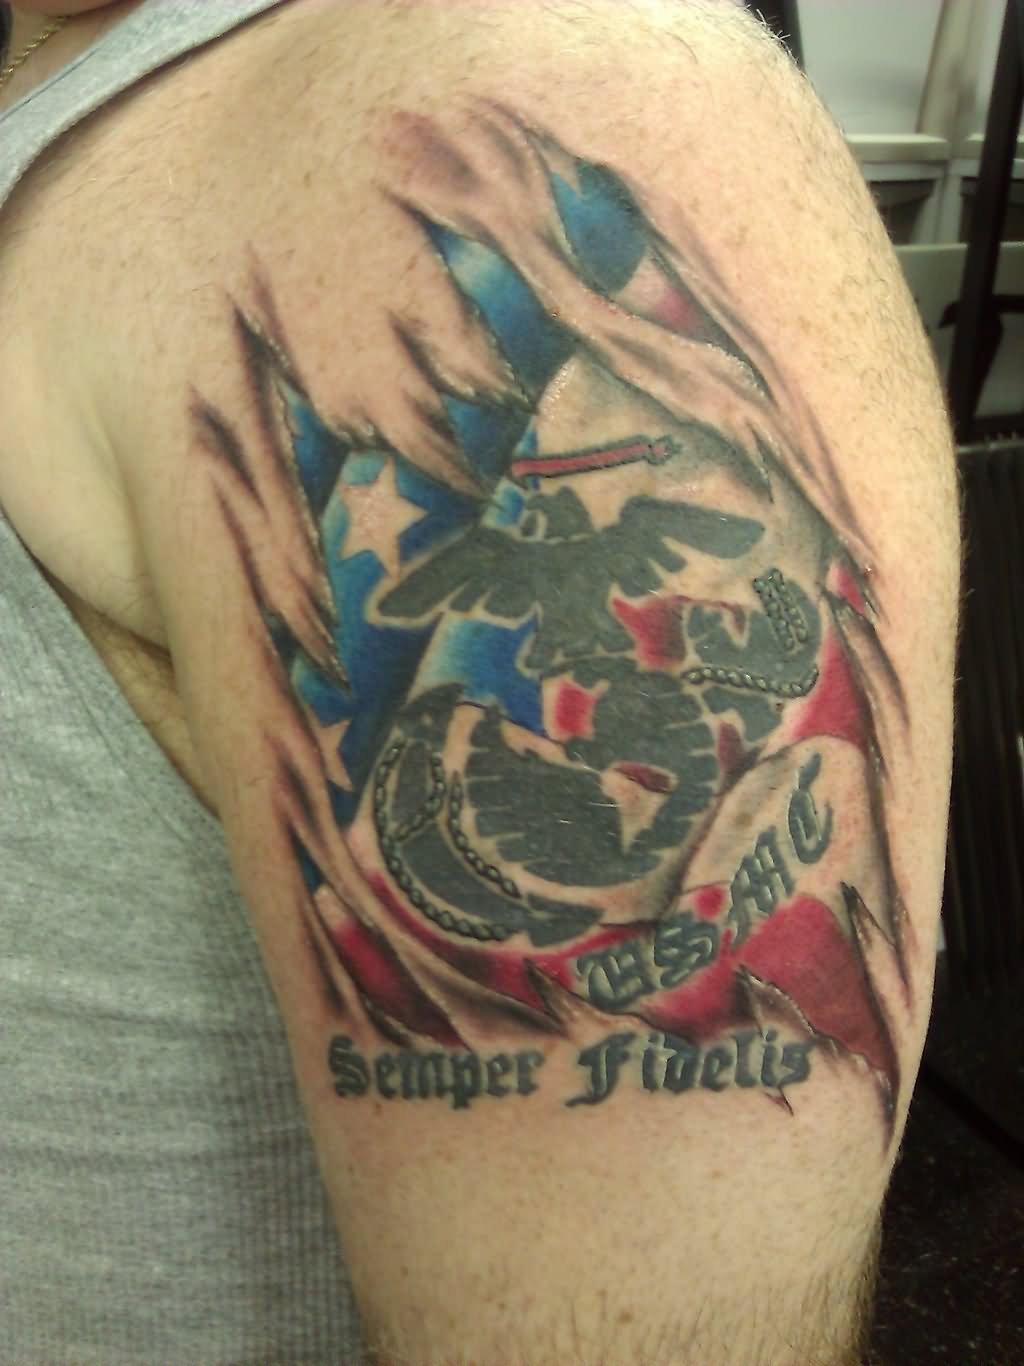 10 torn ripped skin tattoos on shoulder for Ripped skin flag tattoo